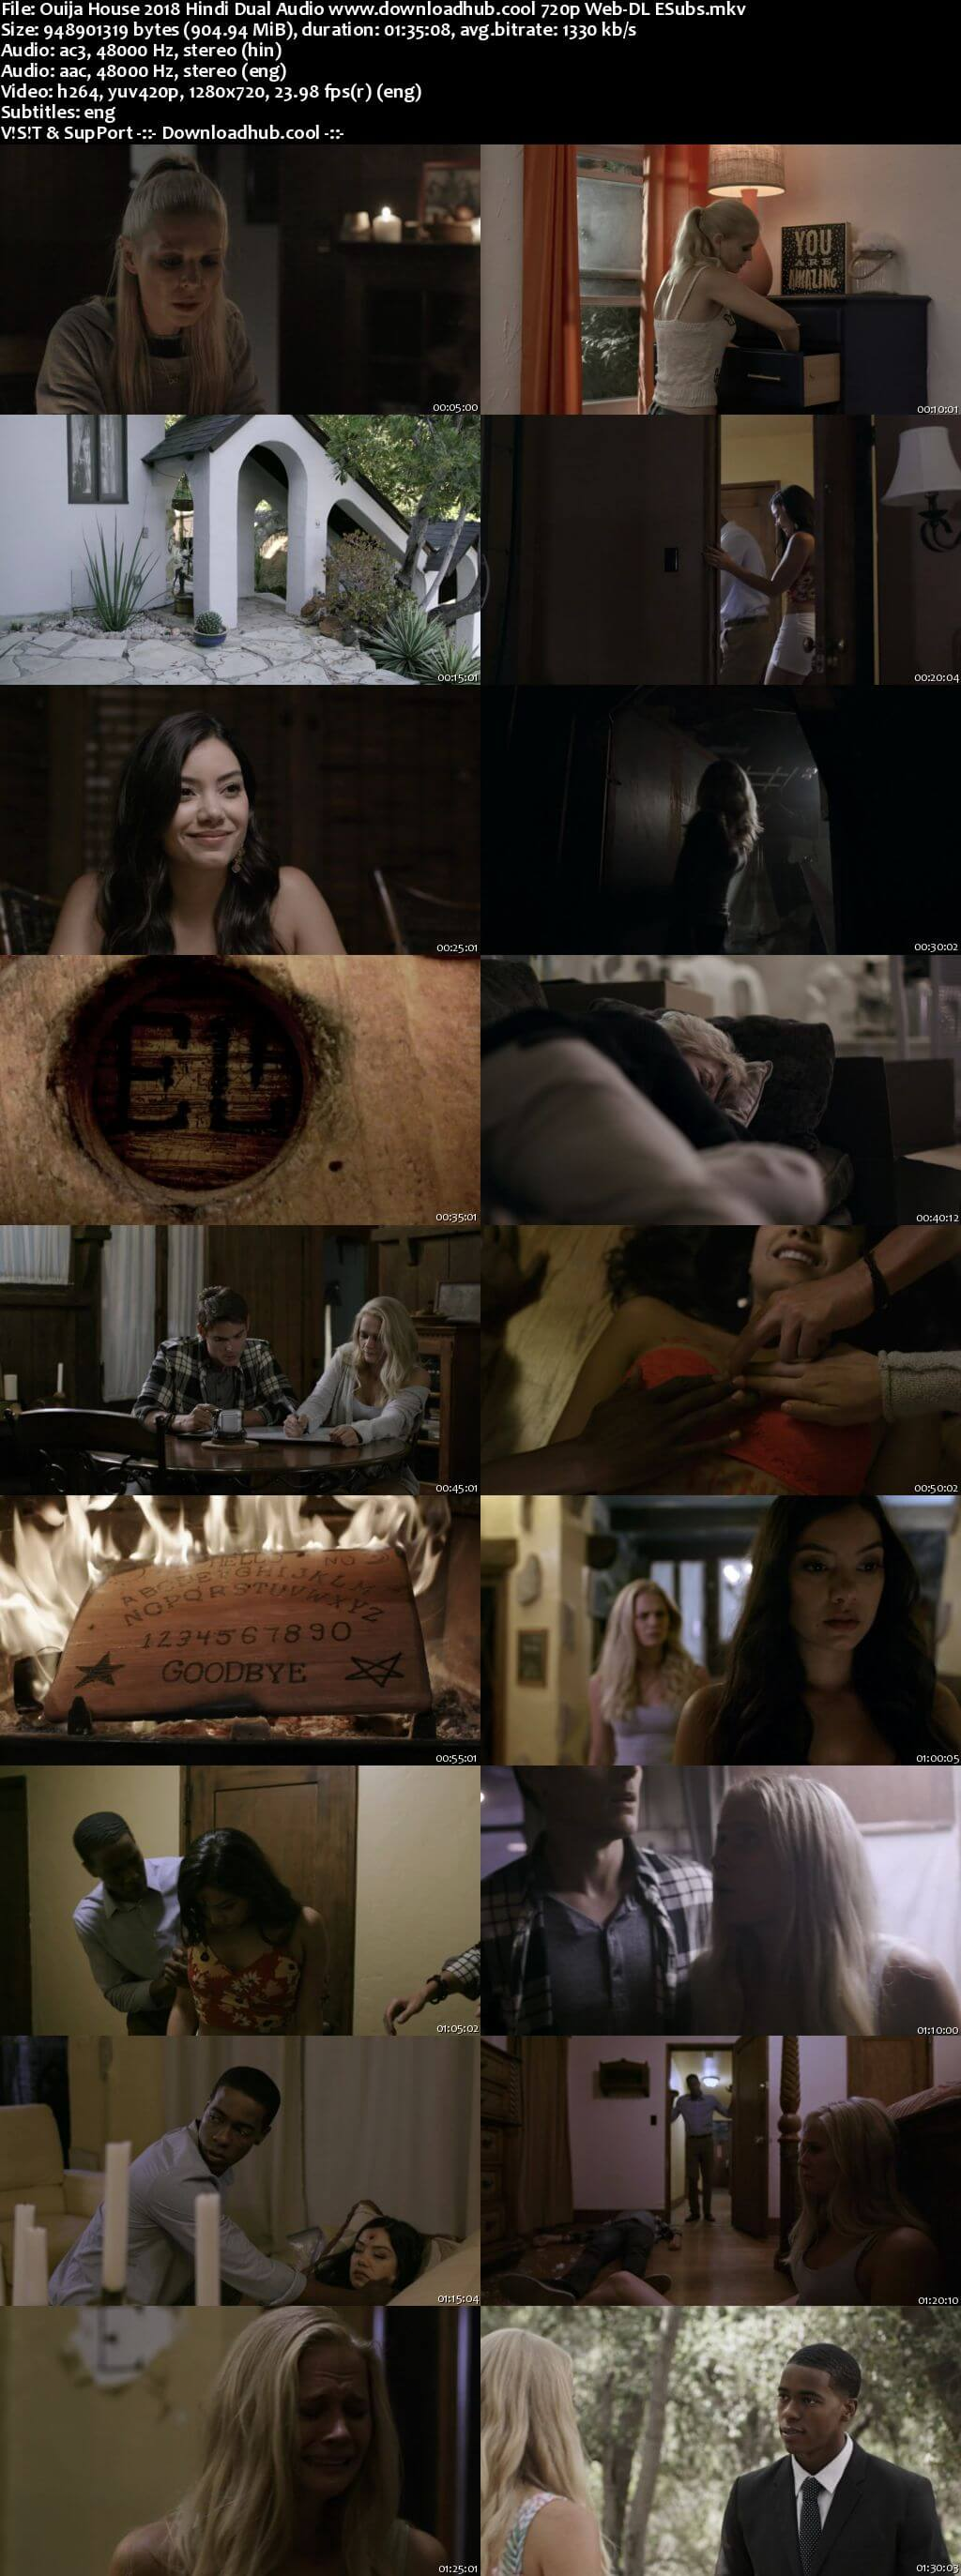 Ouija House 2018 Hindi Dual Audio 720p Web-DL ESubs